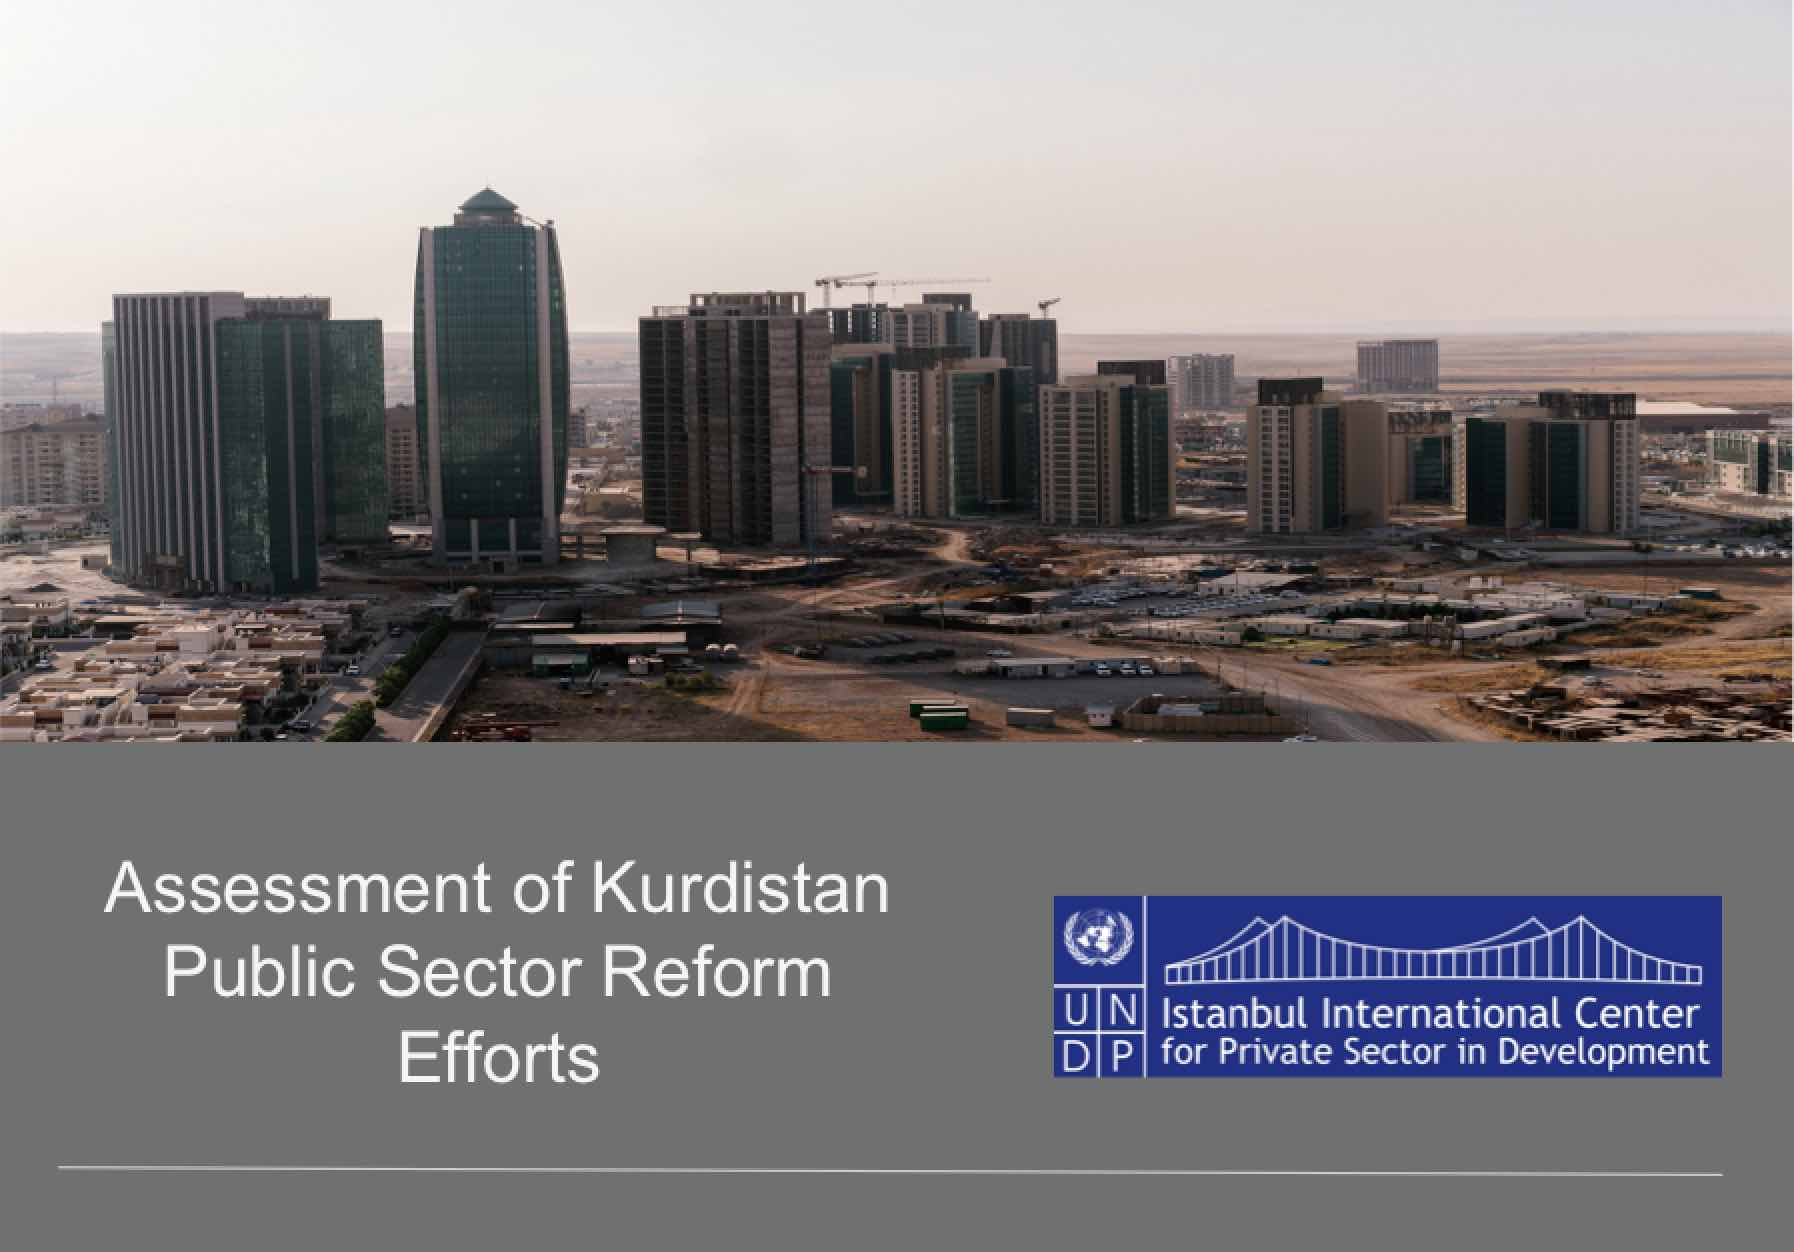 Kurdisatn Public Sector Program